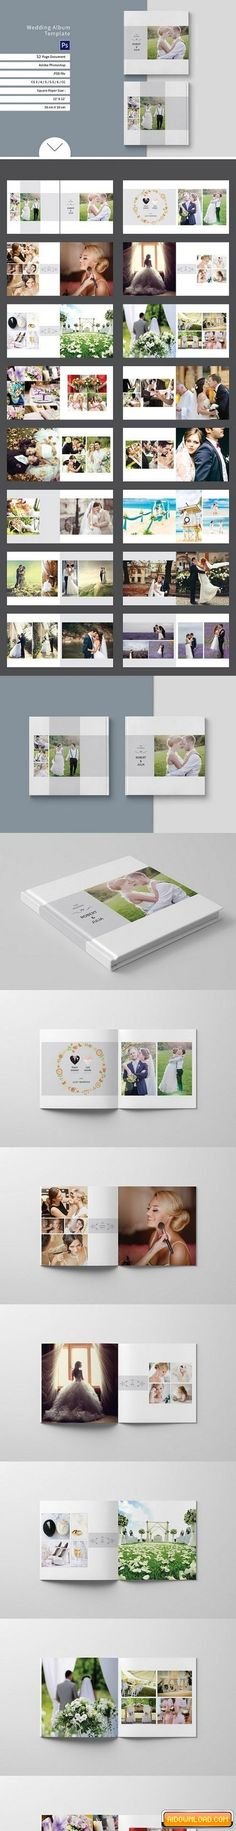 Wedding Album Template 888911 Free Download | Free Graphic Templates, Fonts, Logos & Icons, PSD, AI